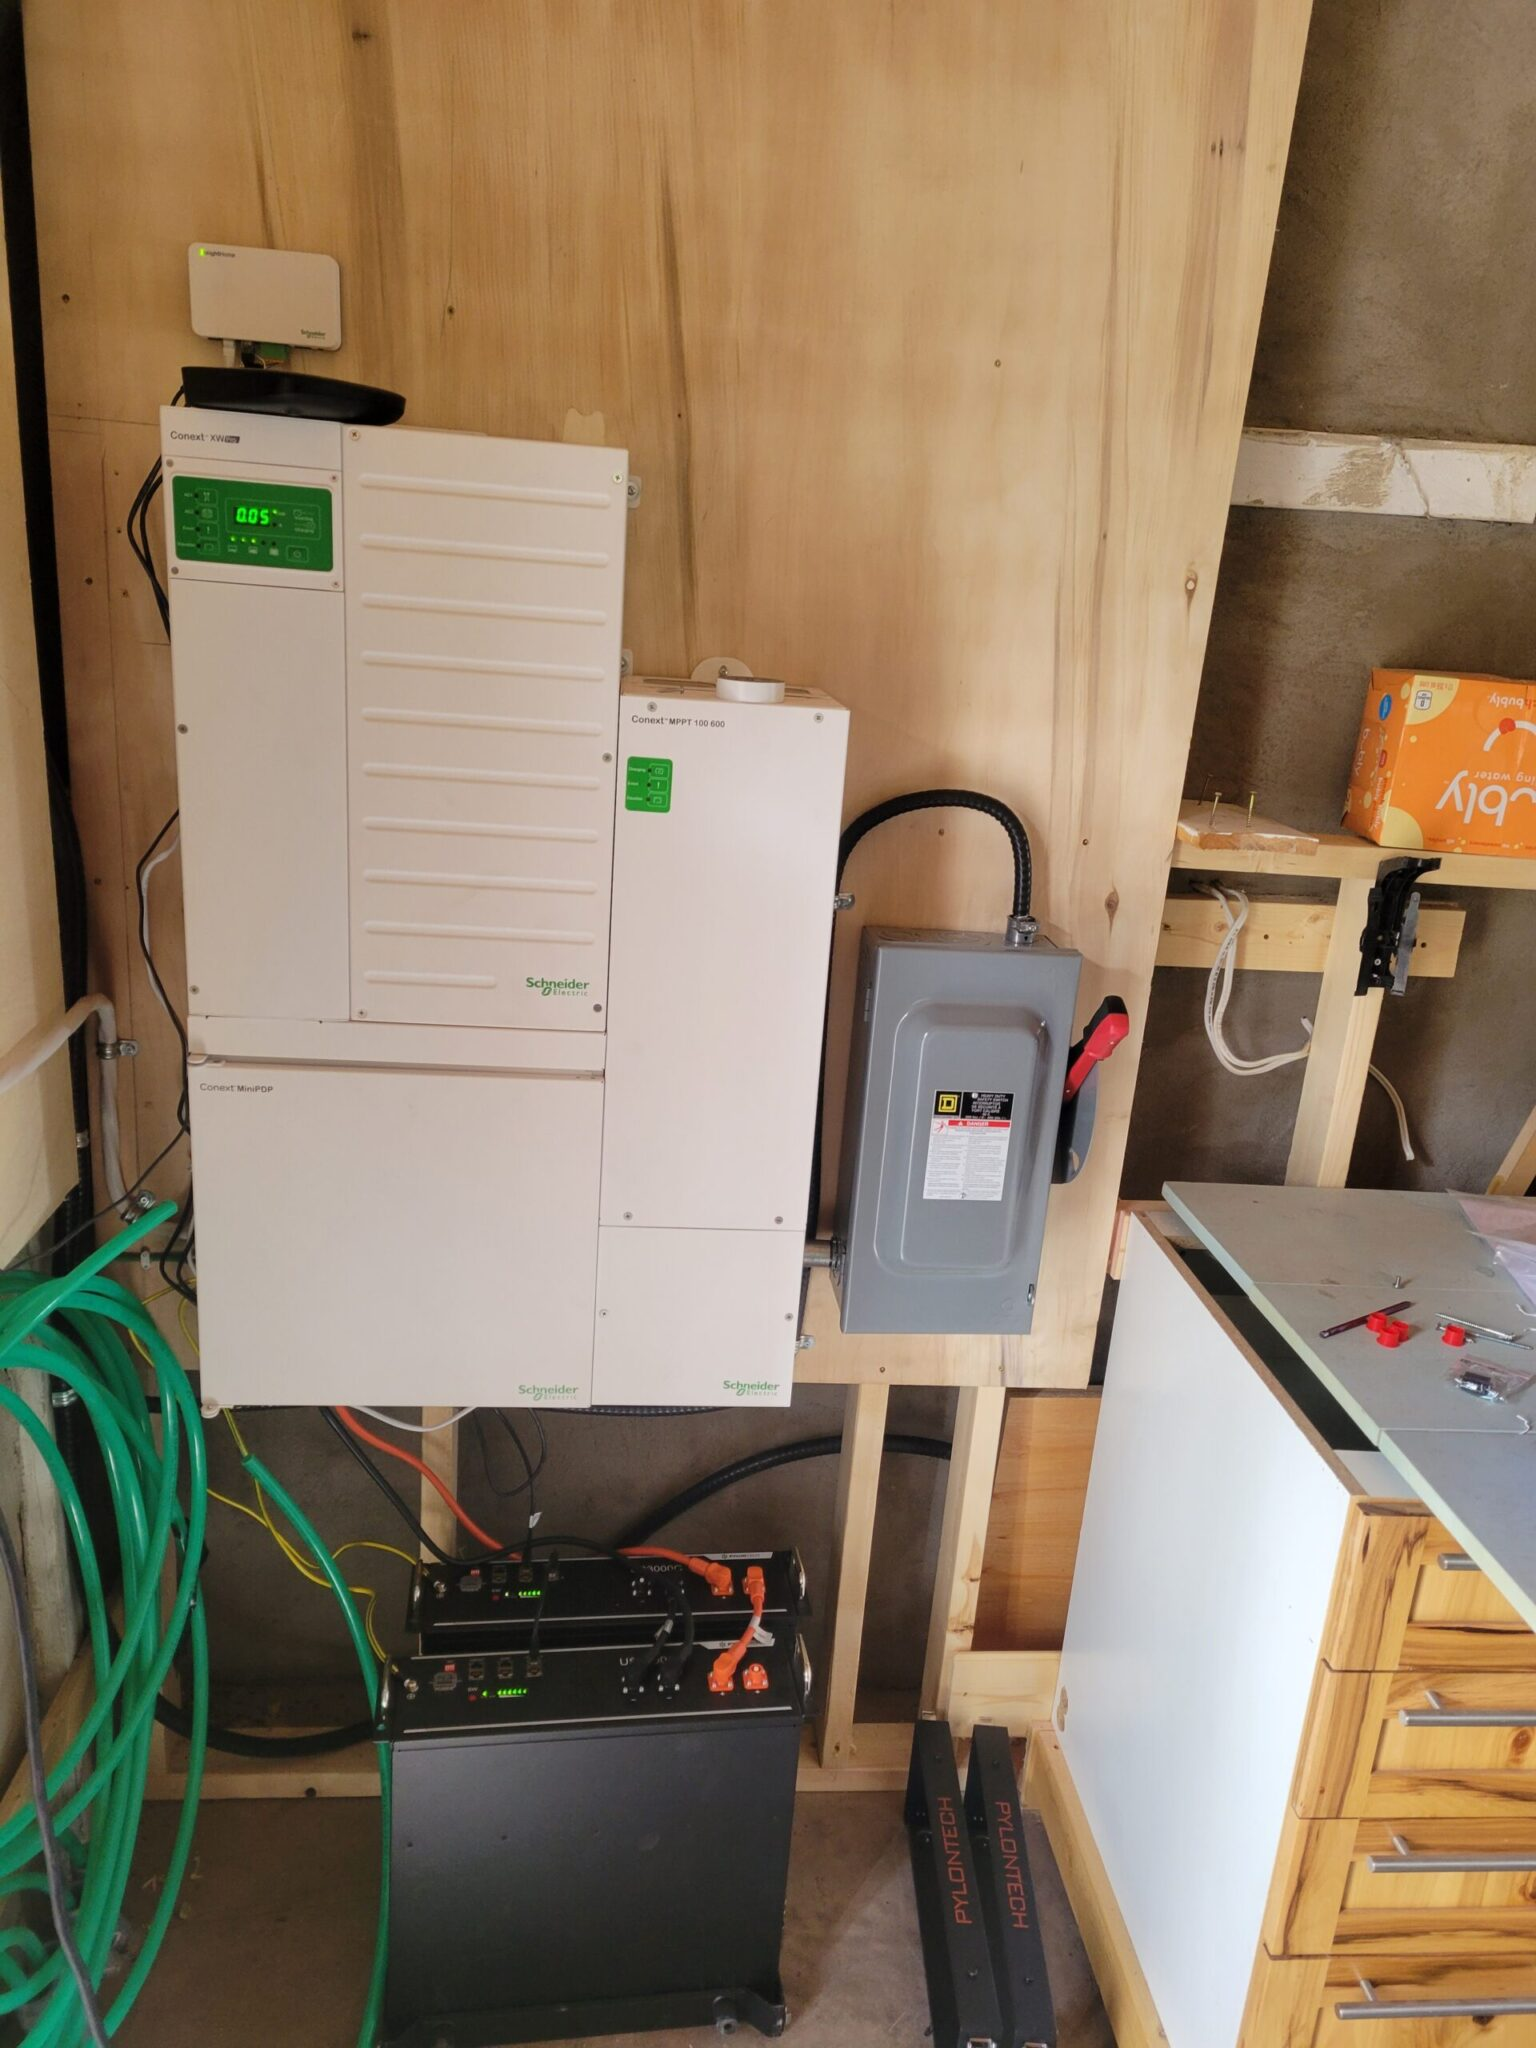 Inverter/Charger c/w lithium battery bank